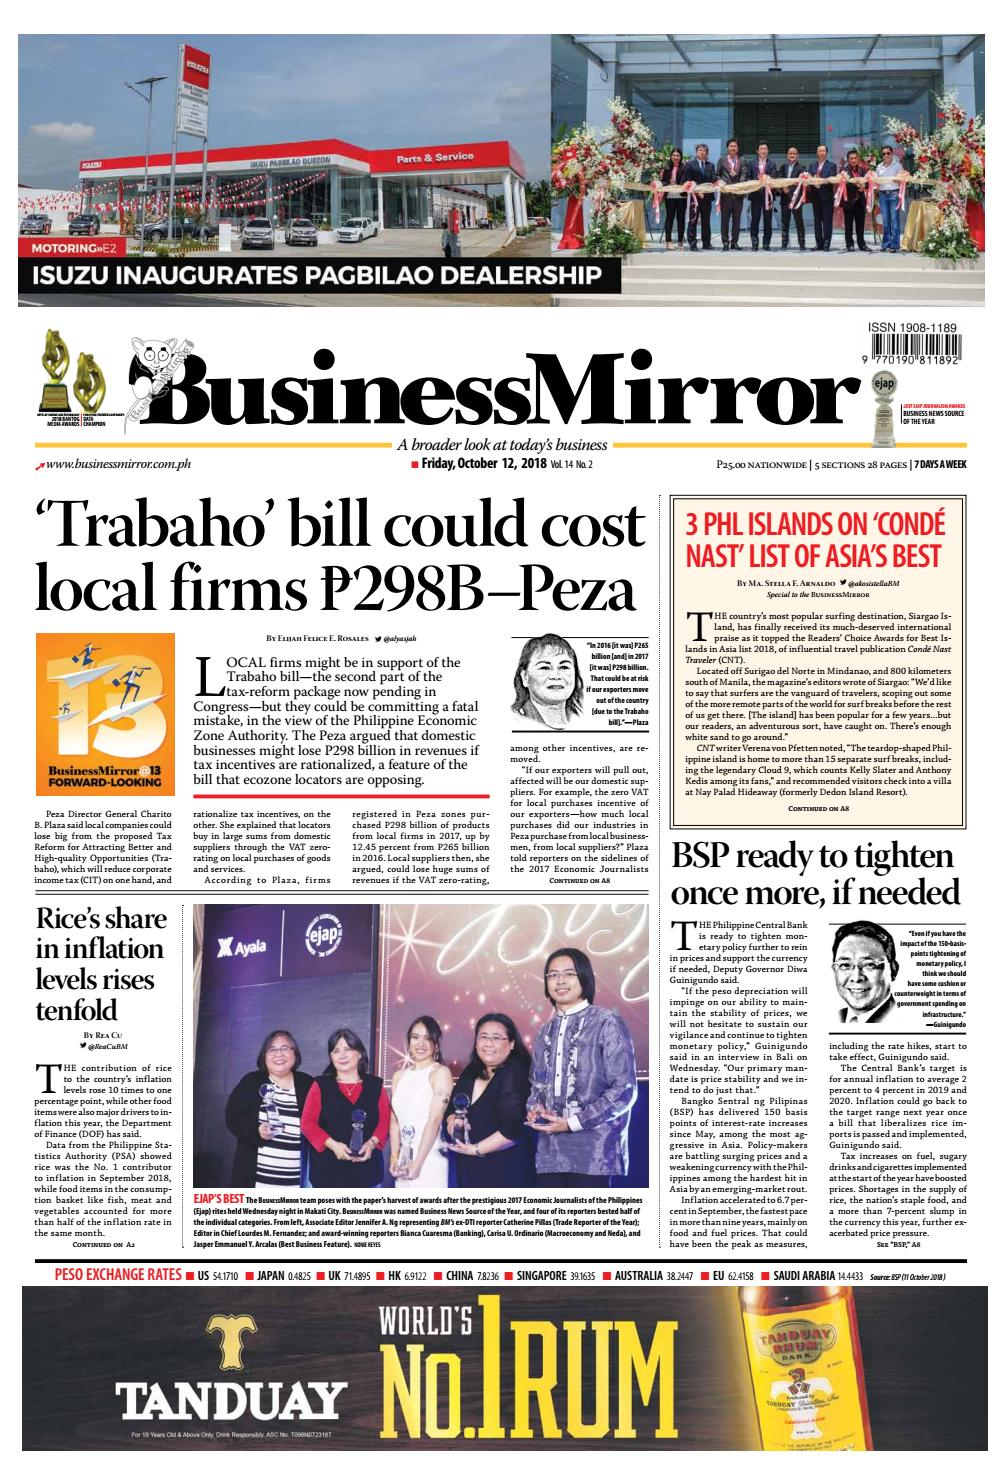 BusinessMirror October 12, 2018 by BusinessMirror - issuu